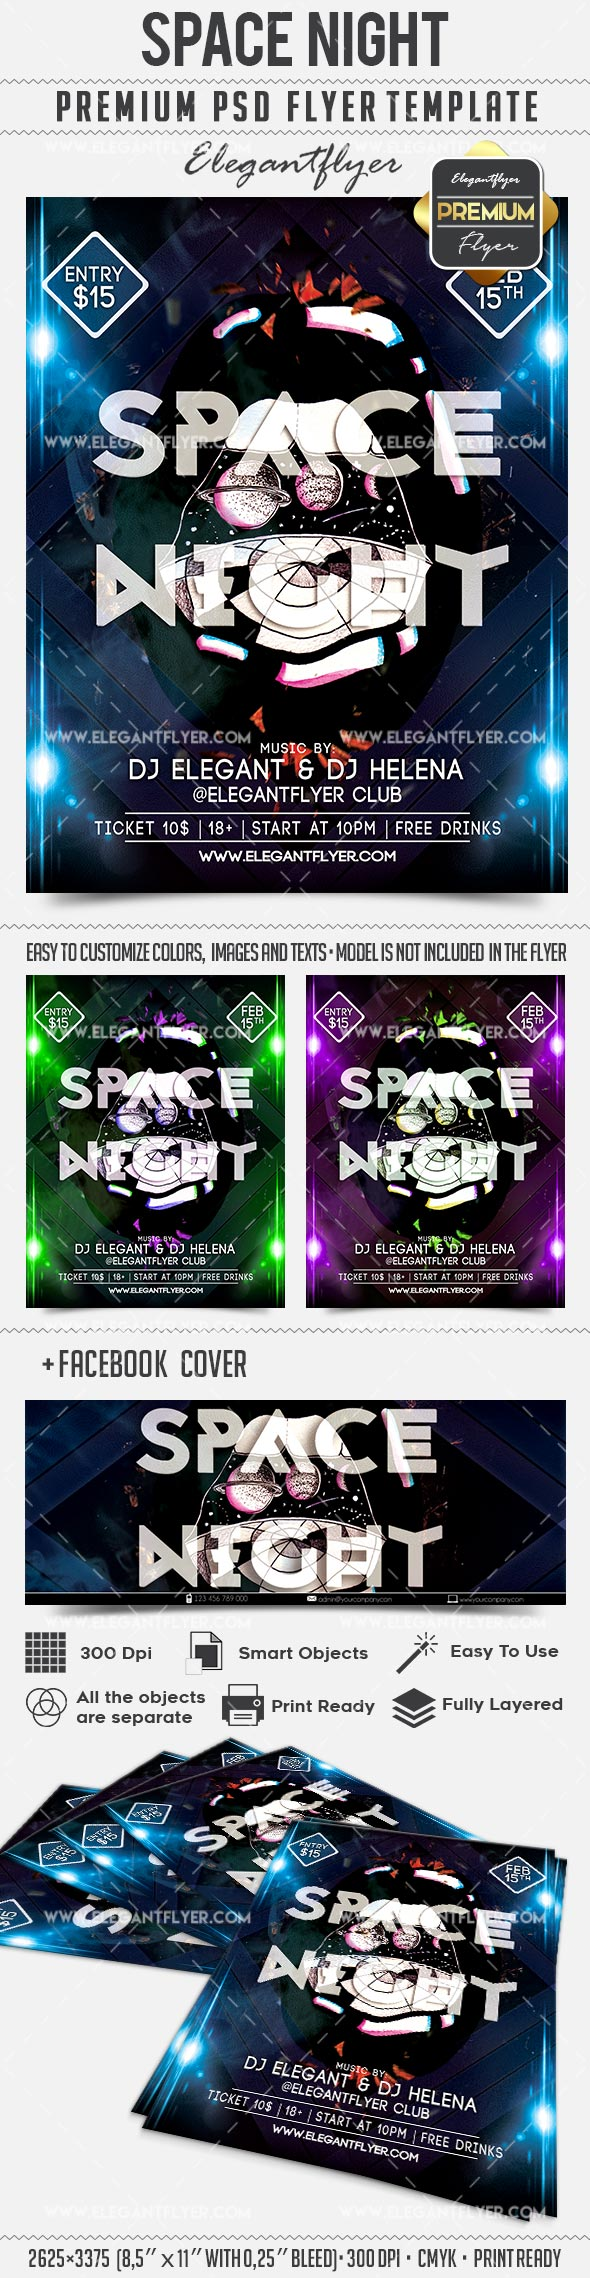 Space Night Club Flyer